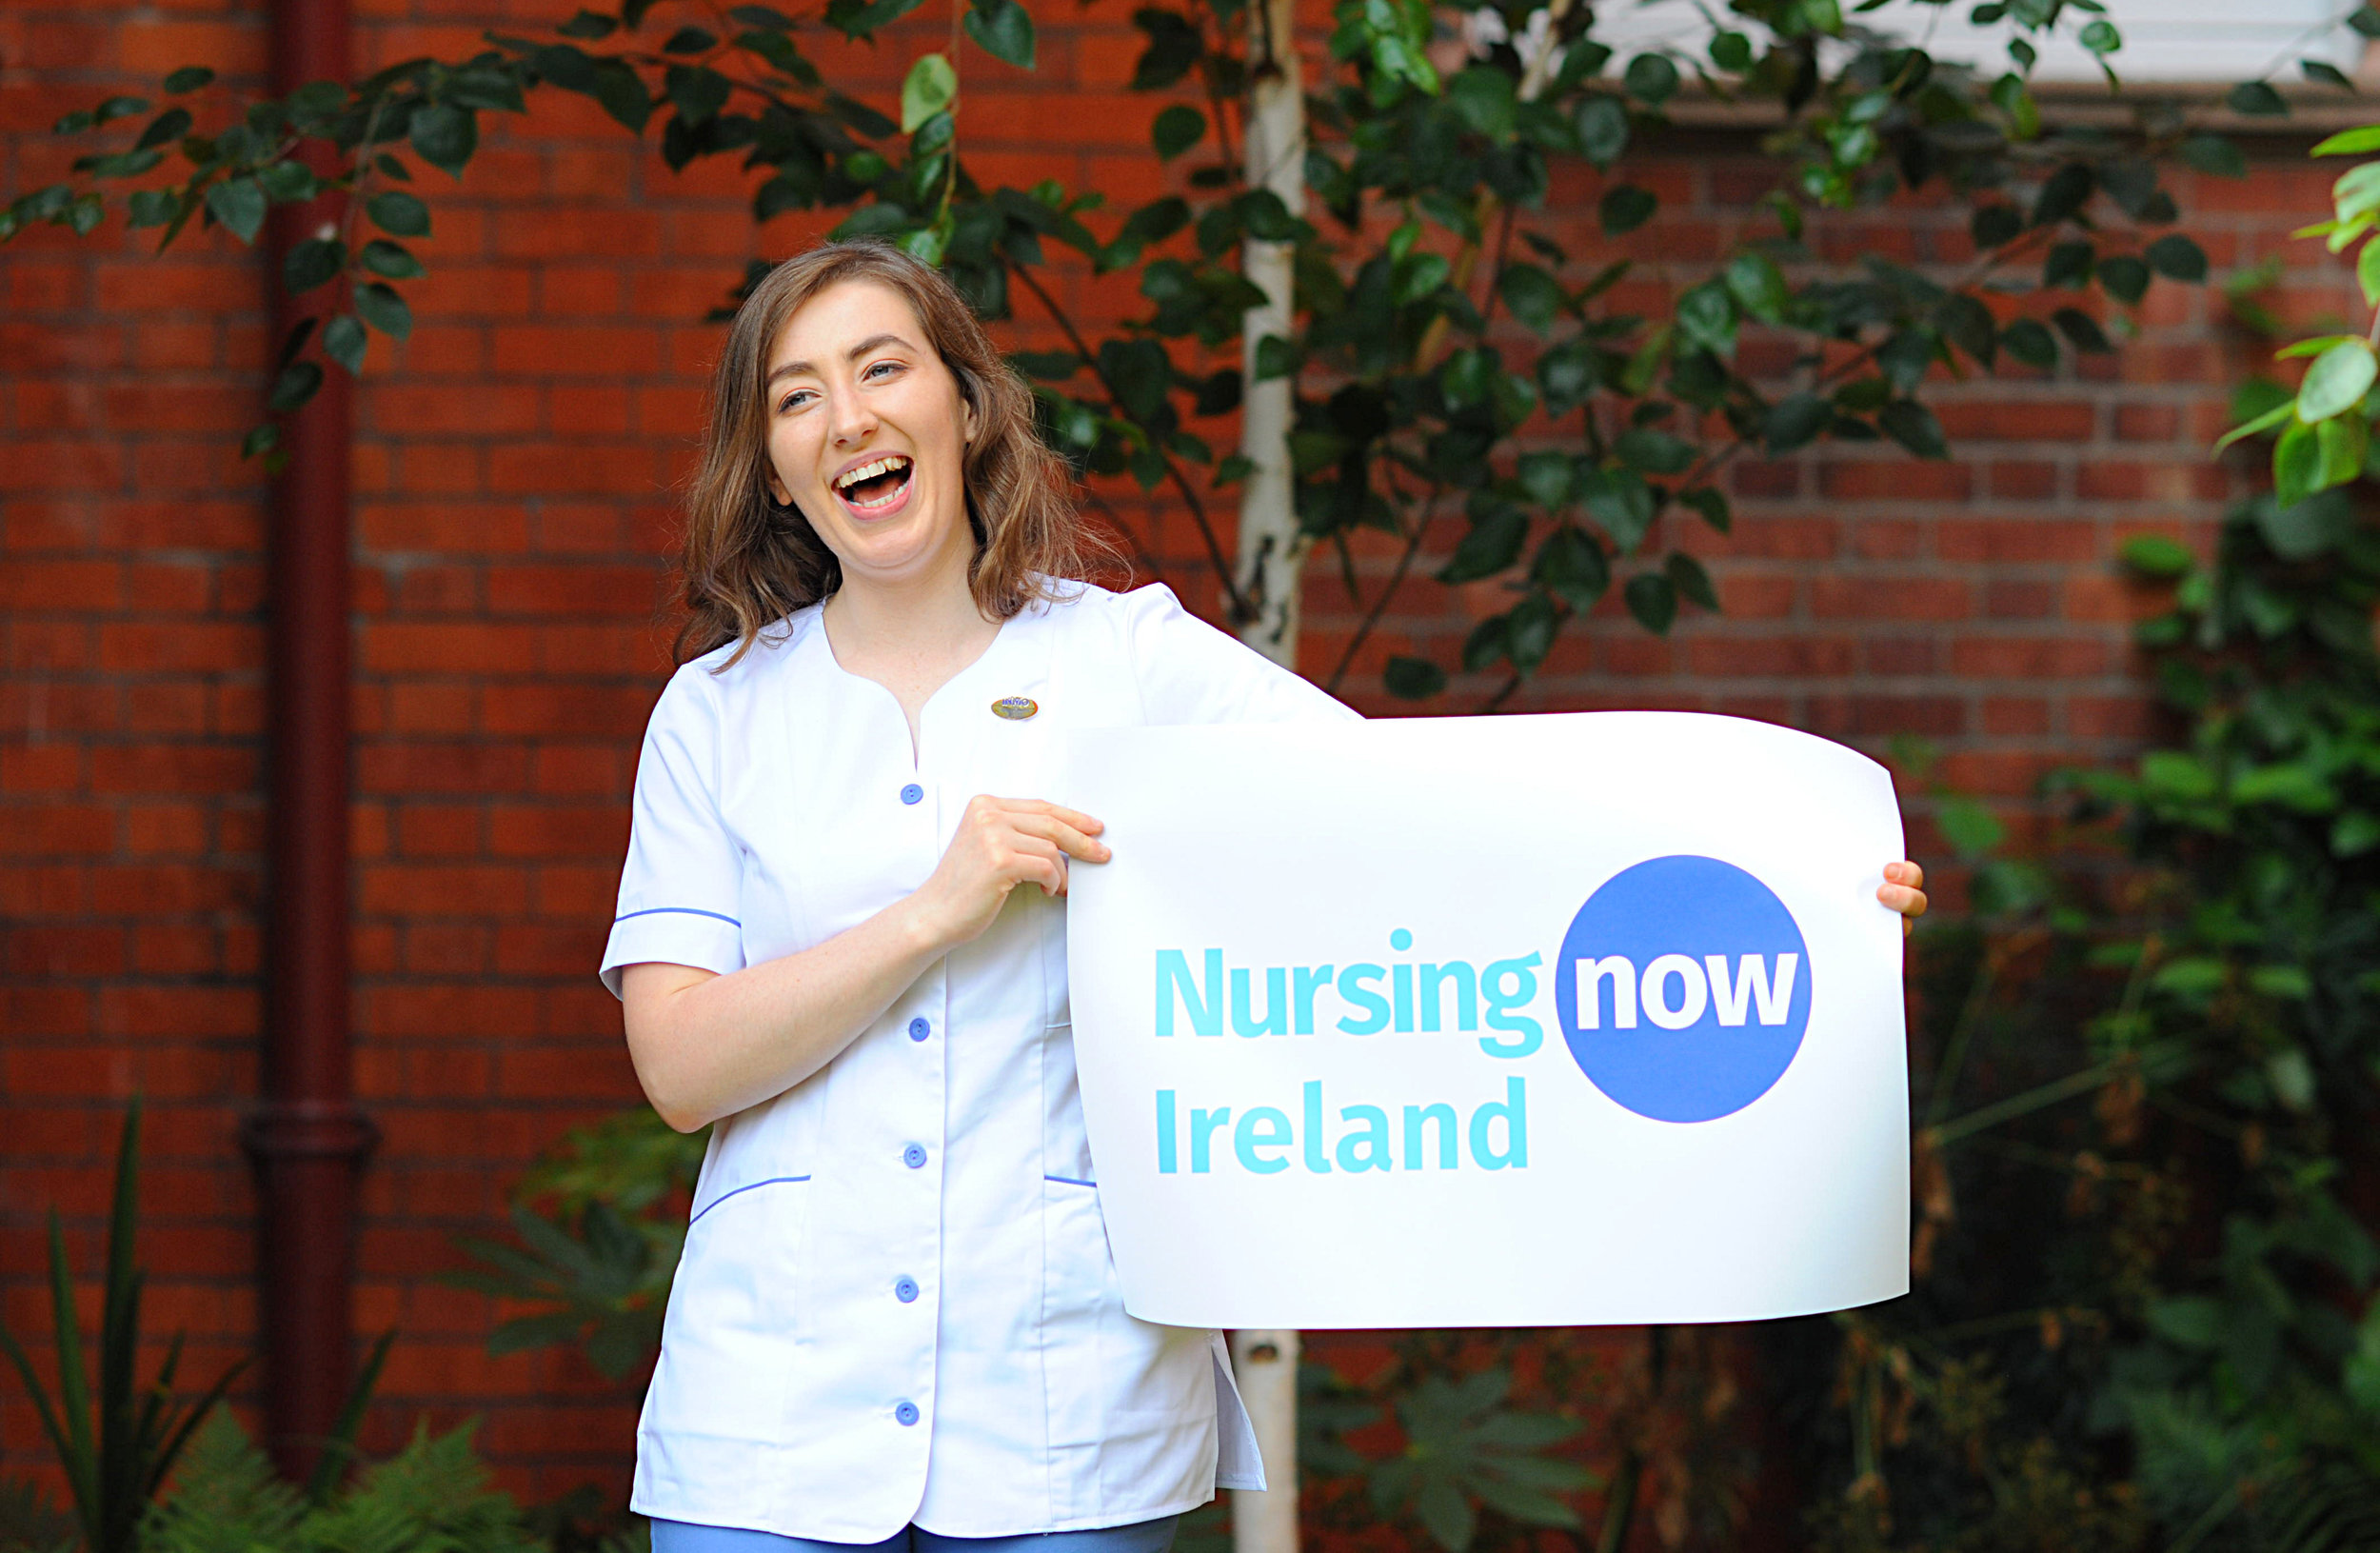 The Nightingale Challenge - To celebrate 2020 as the Year of the Nurse and the Midwife, the Nightingale Challenge aims to equip and empower the next generation of nurses and midwives as leaders, practitioners and advocates in health.